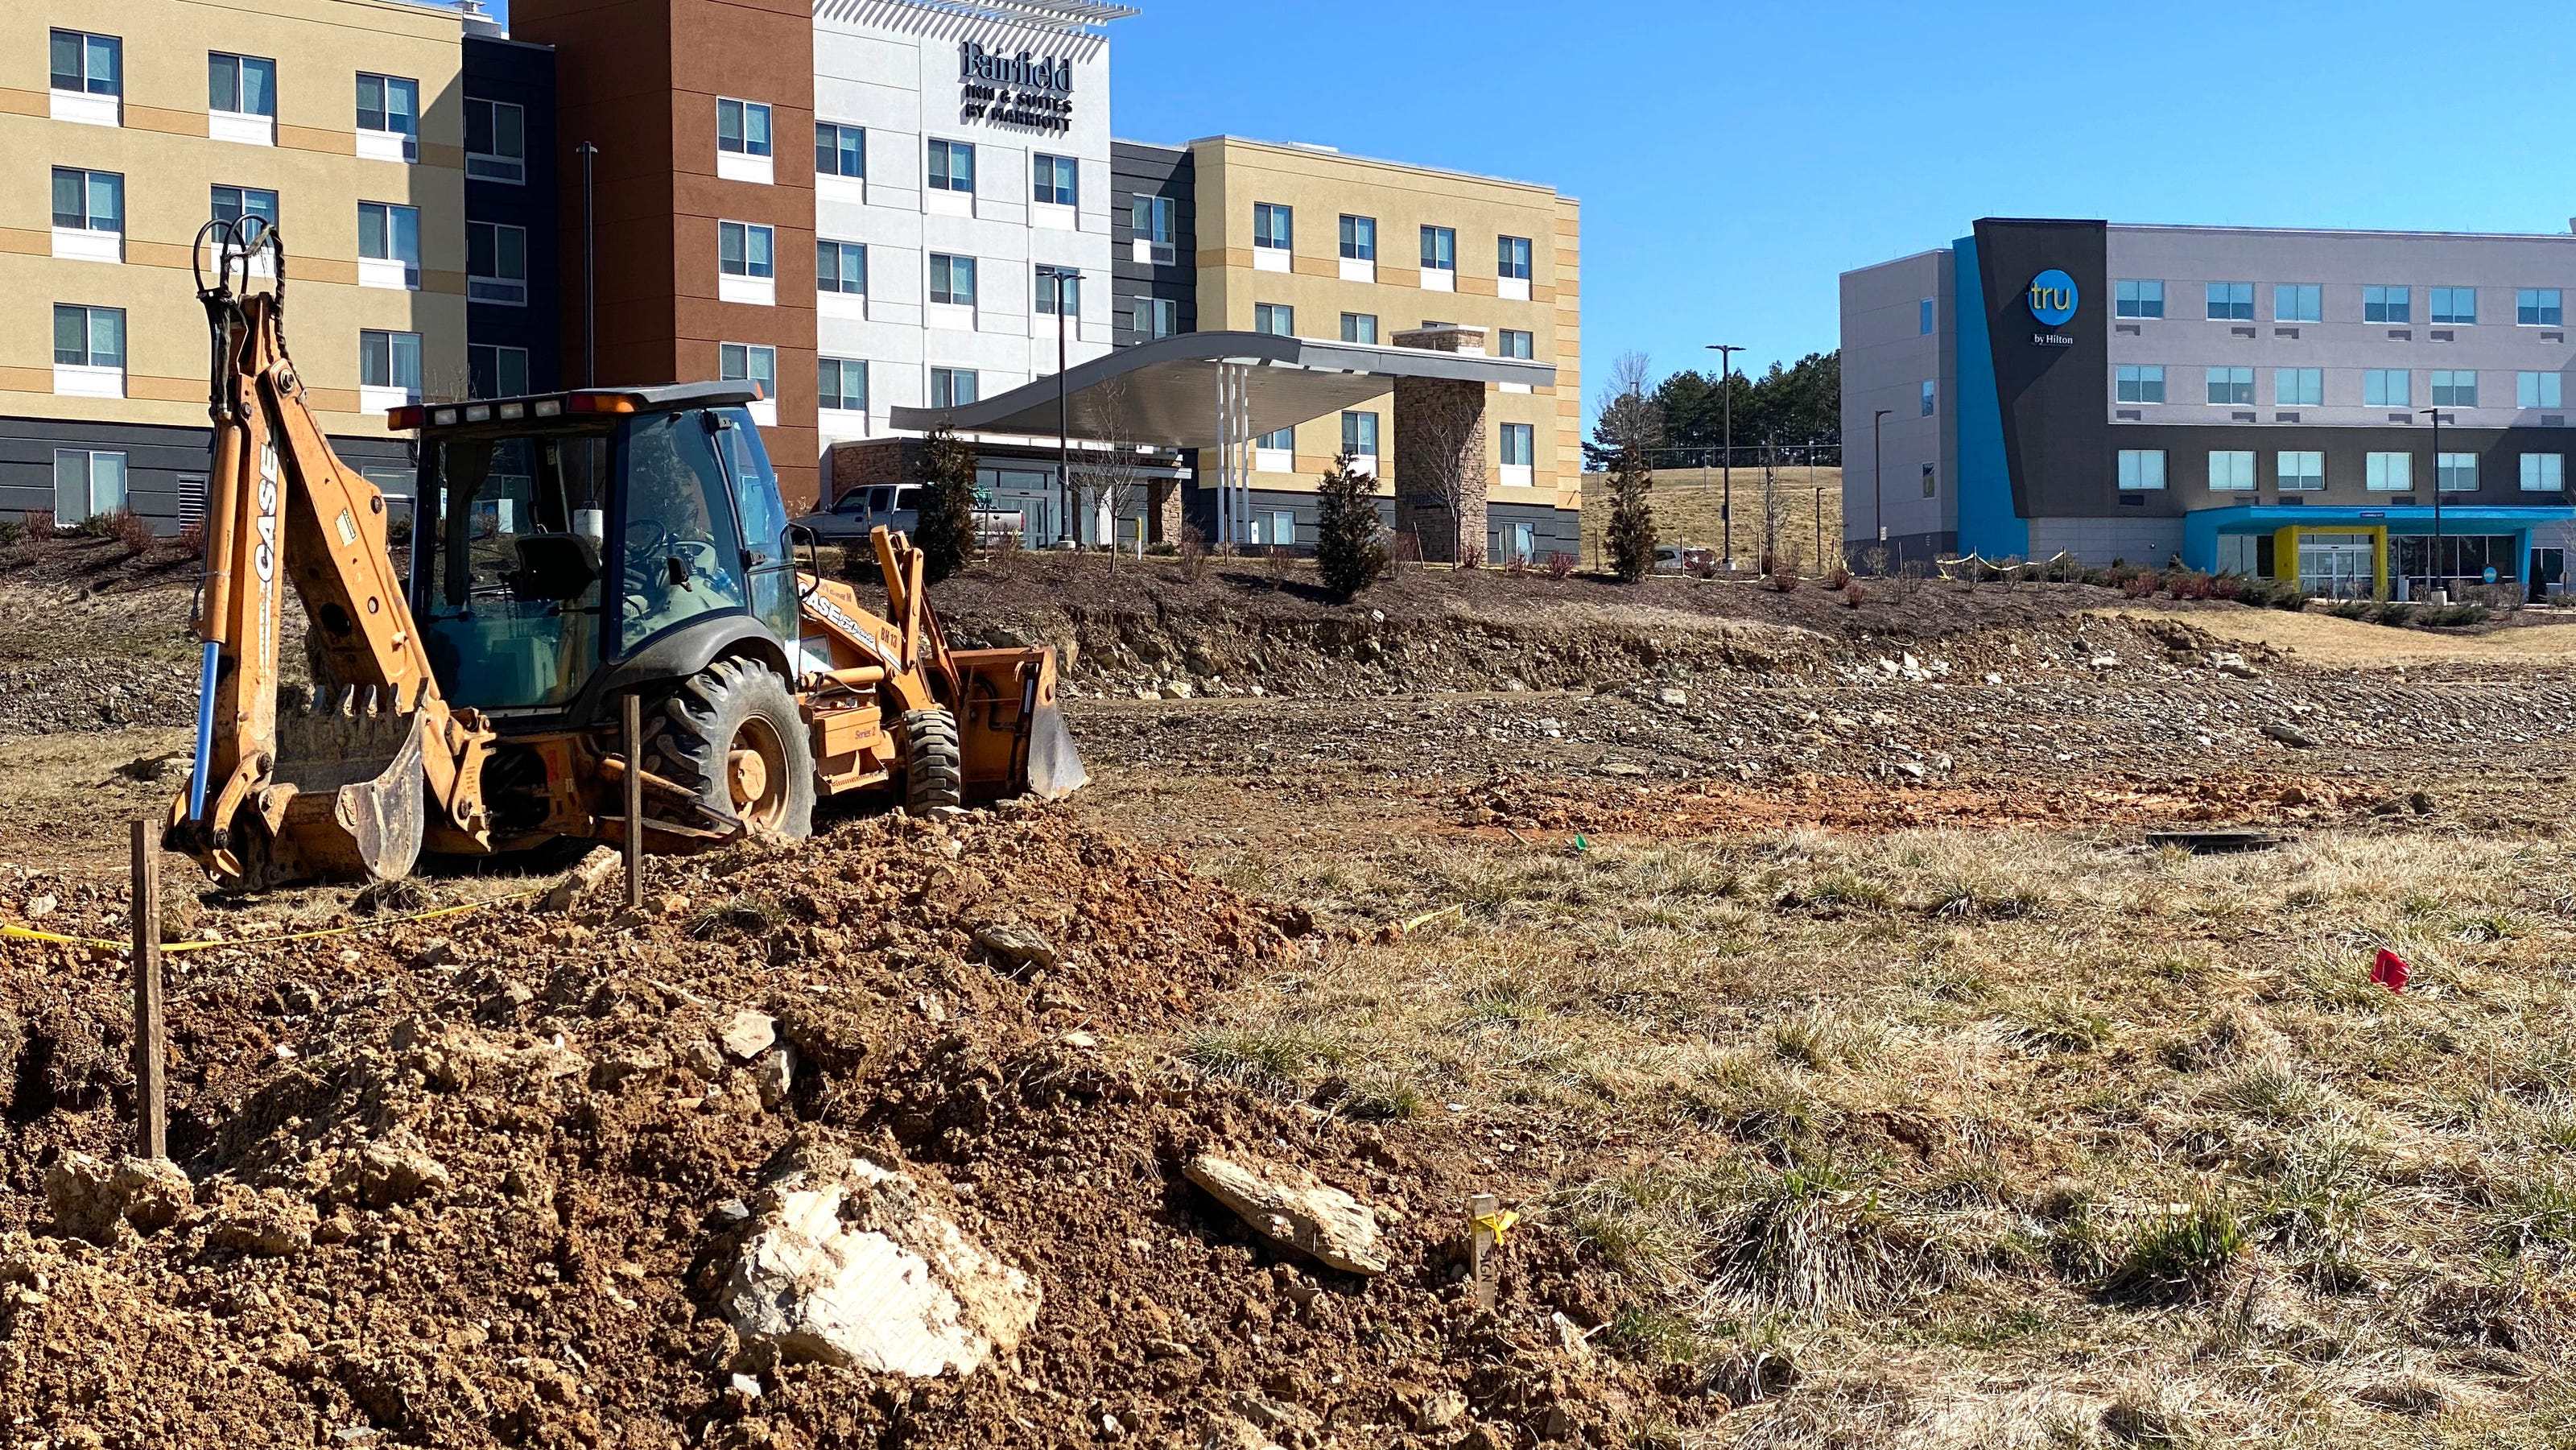 Drive-thru Chipotle, Jersey Mike's and more coming soon to ...